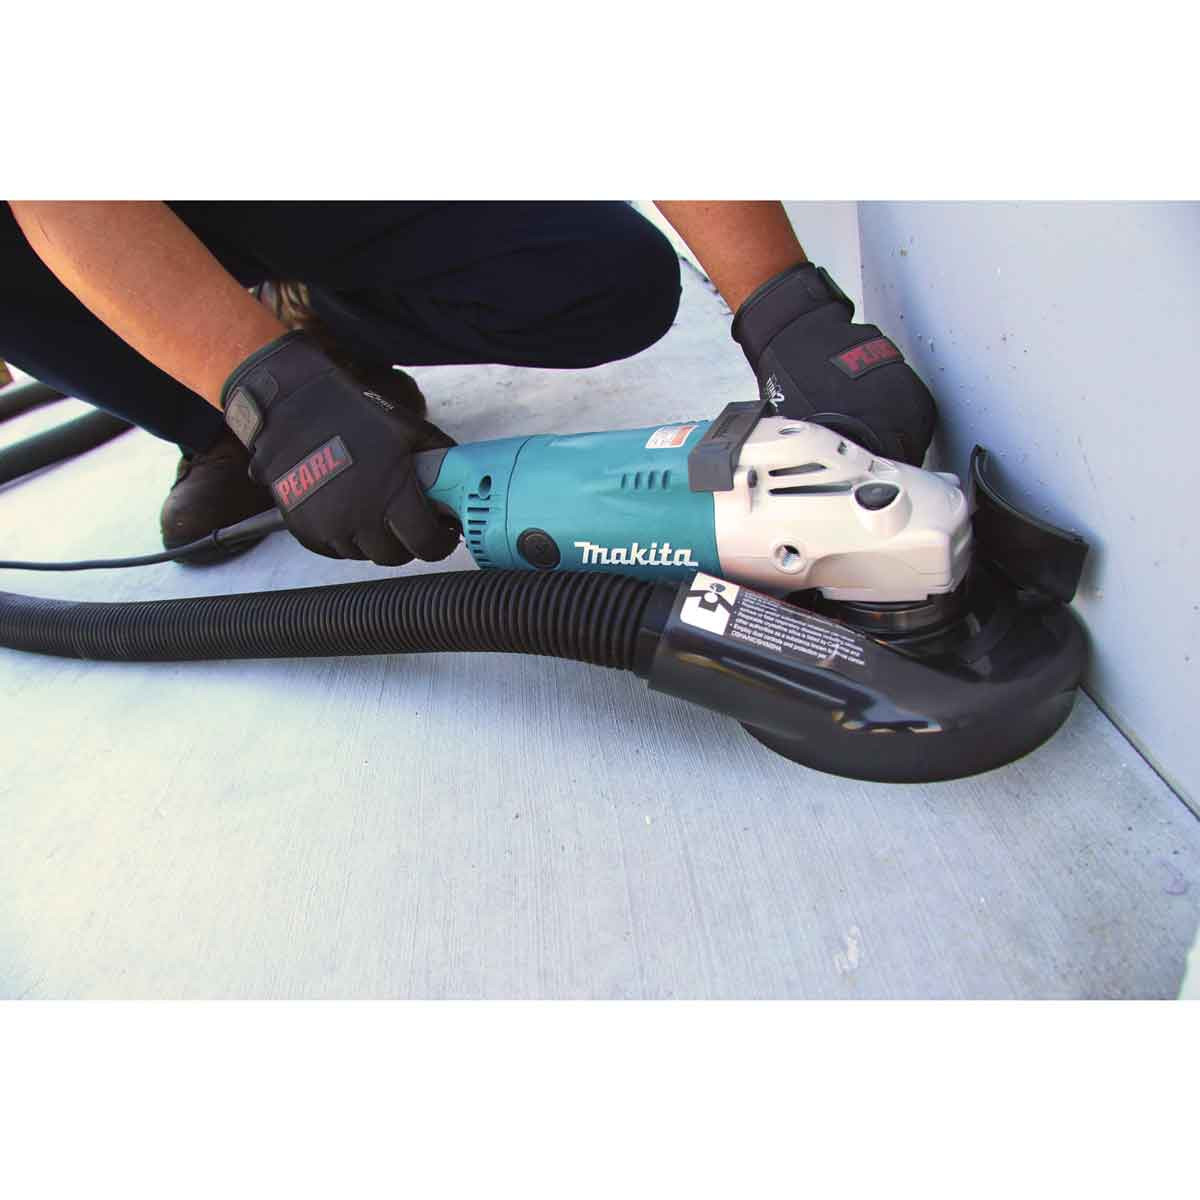 Pearl Abrasive dust shroud with makita grinder